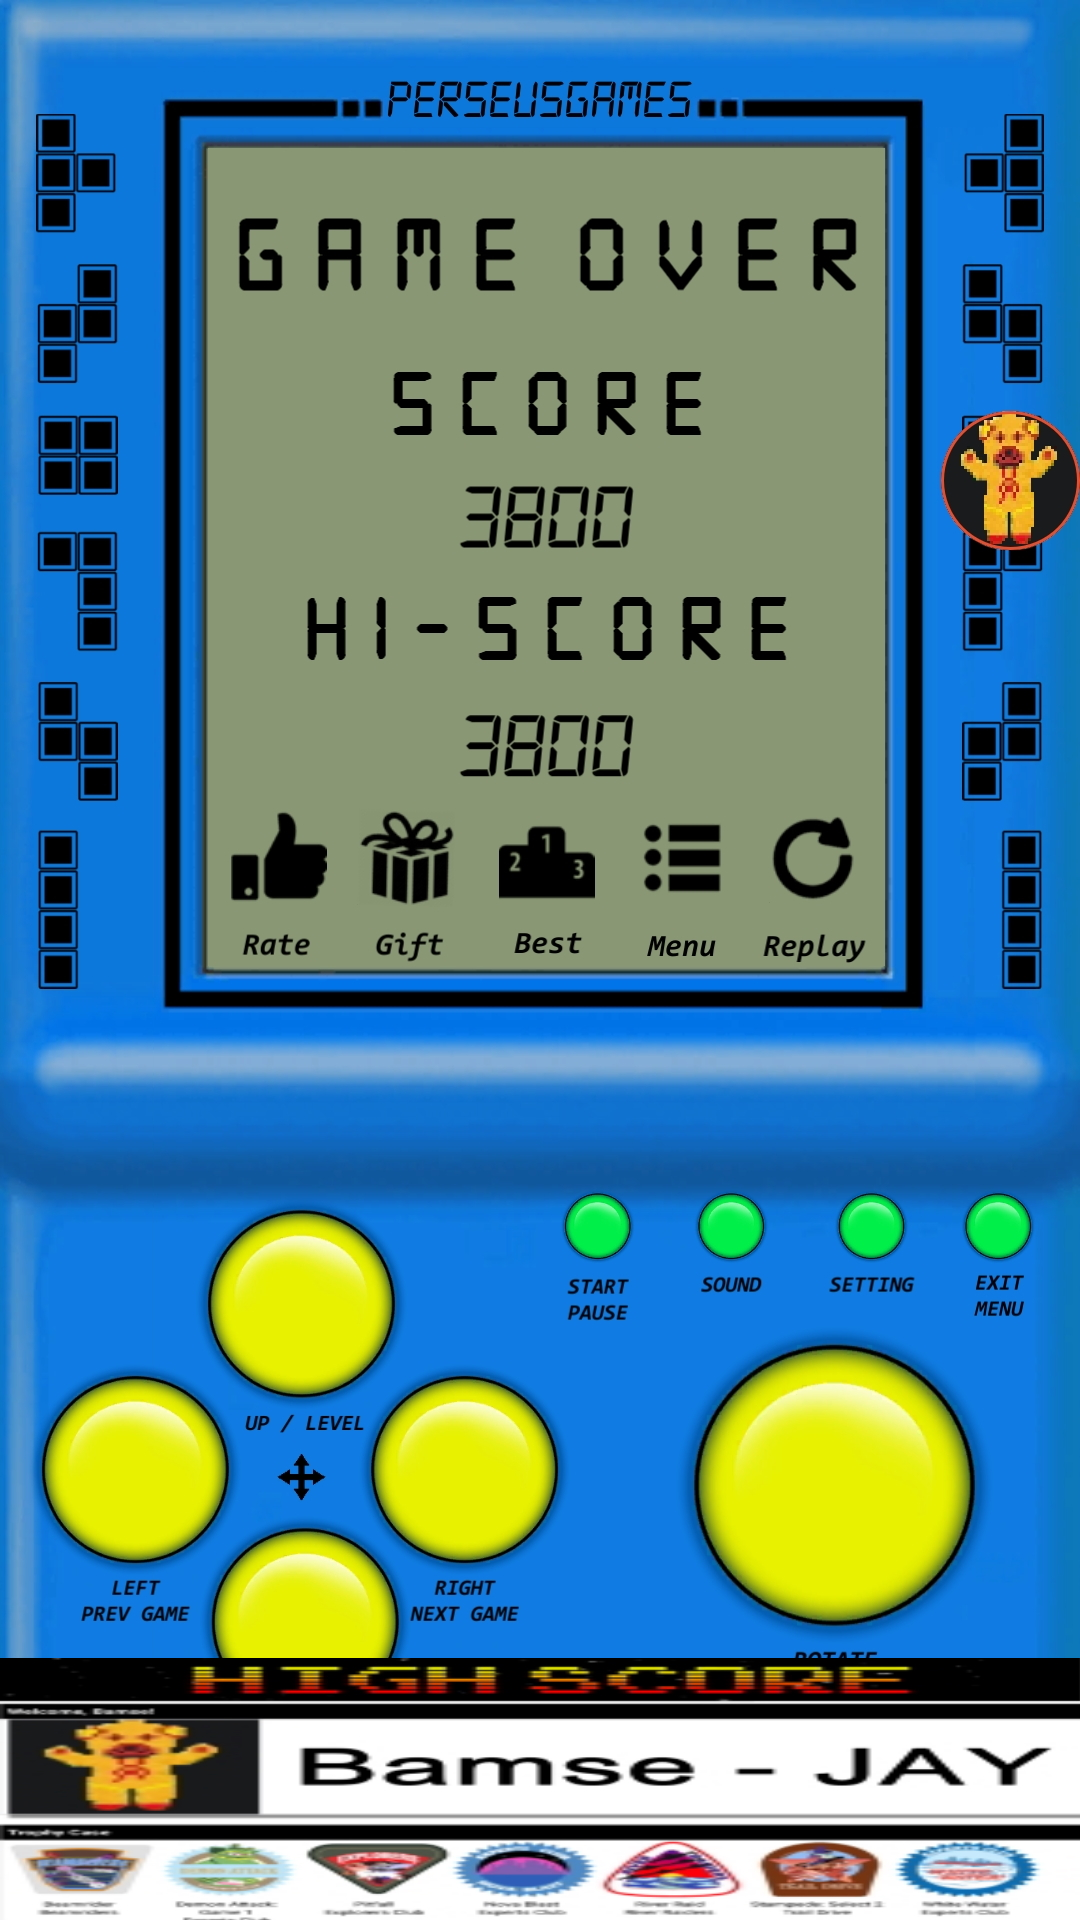 Bamse: Brick Game: Game G (Android) 3,800 points on 2019-12-05 17:24:45